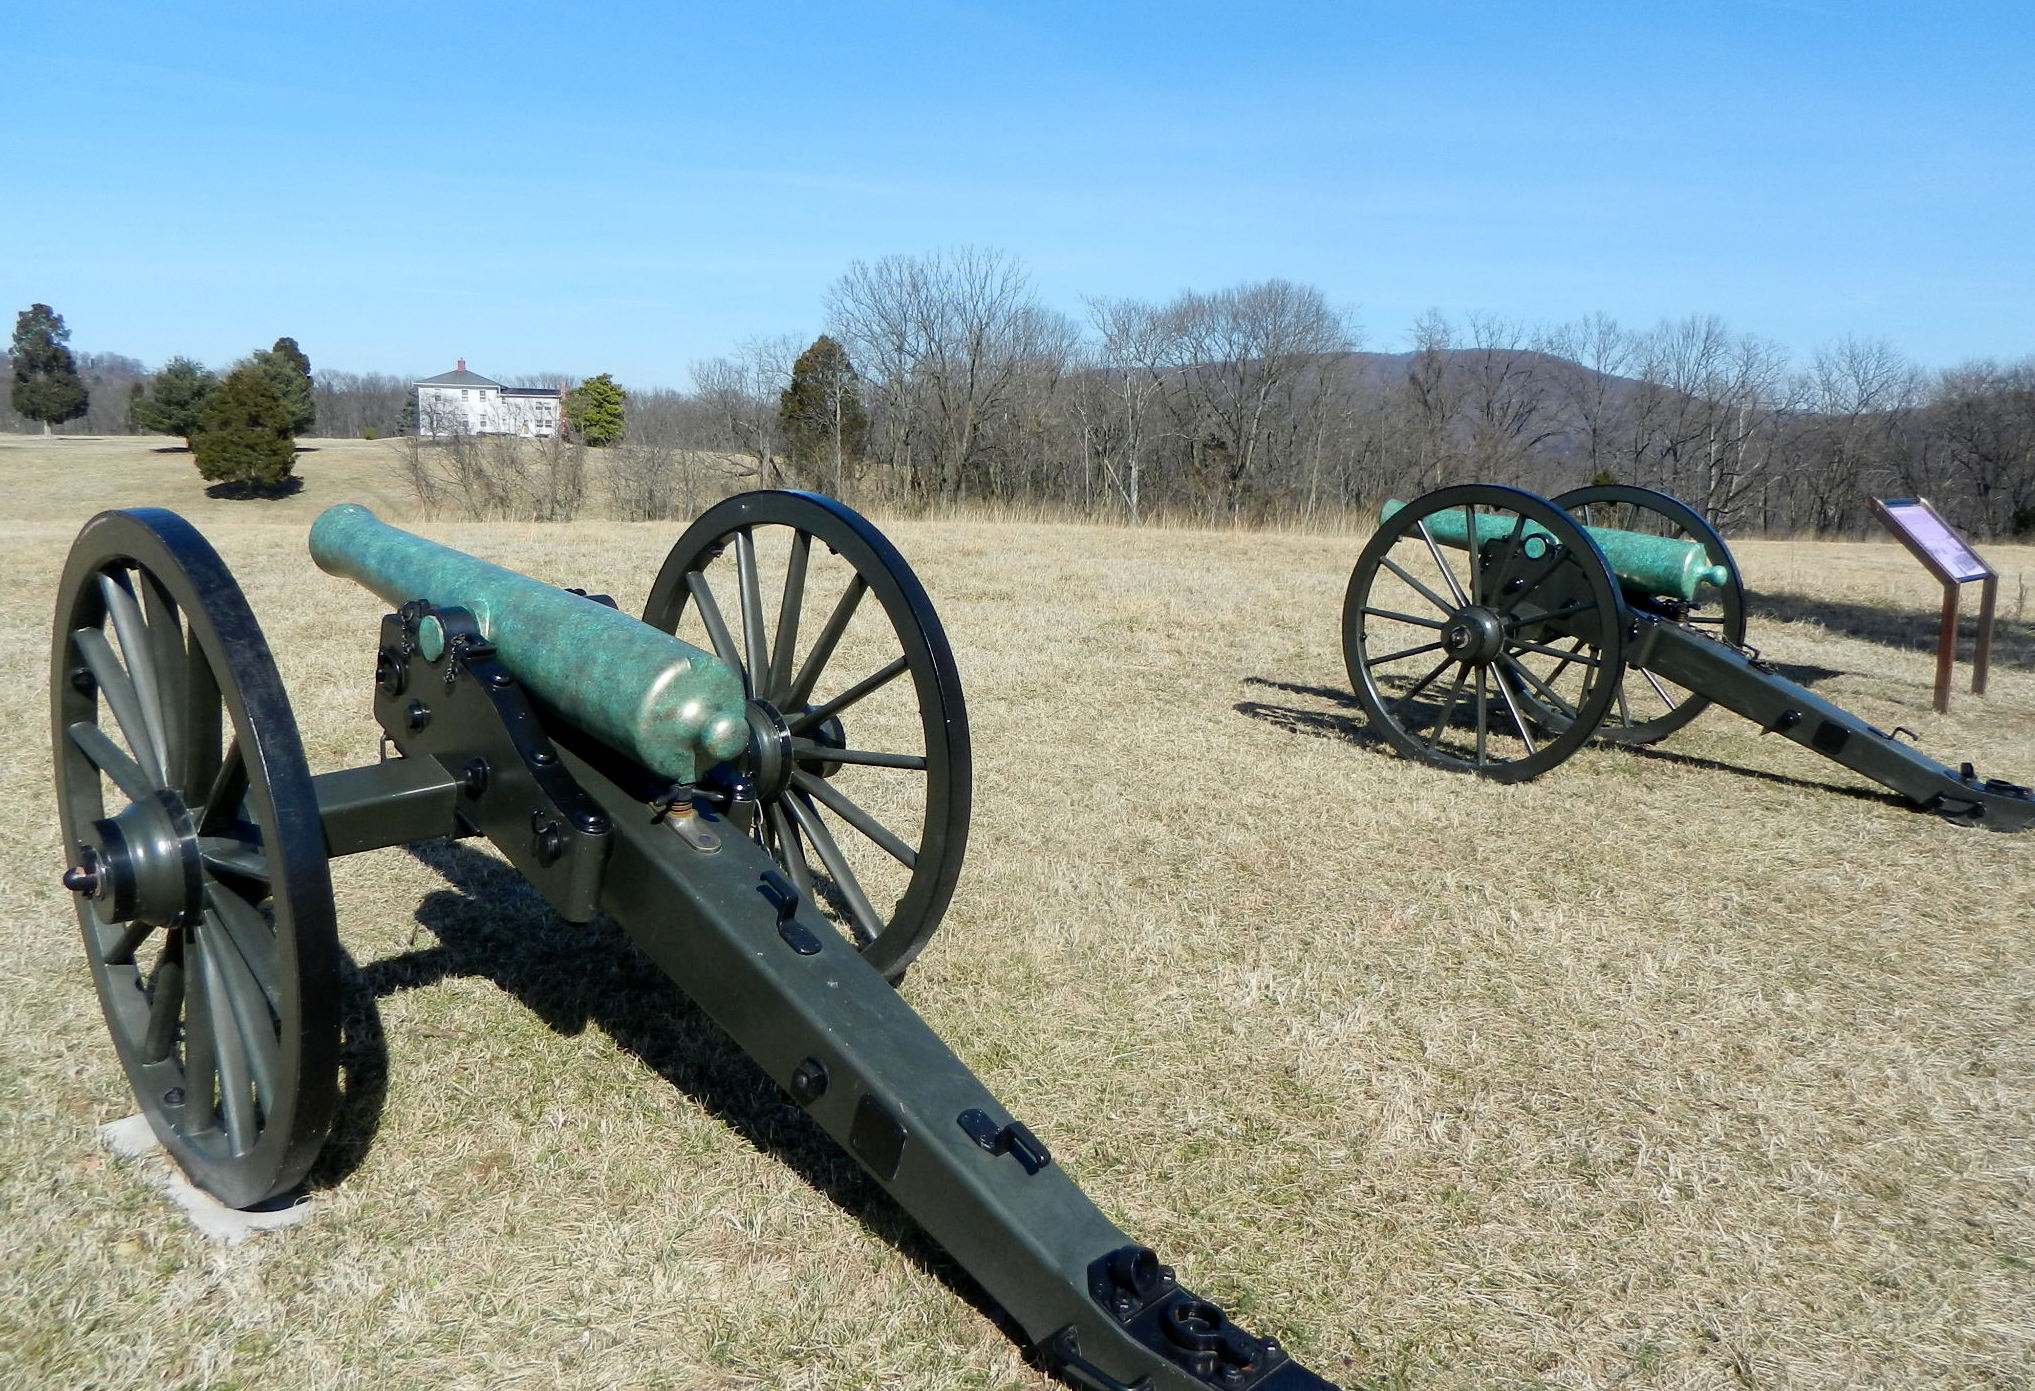 By placing cannon at the summit of the farm, the Confederate forces were able to force the Union side into surrender at the Battle of Harpers Ferry. Image obtained from Panoramio.